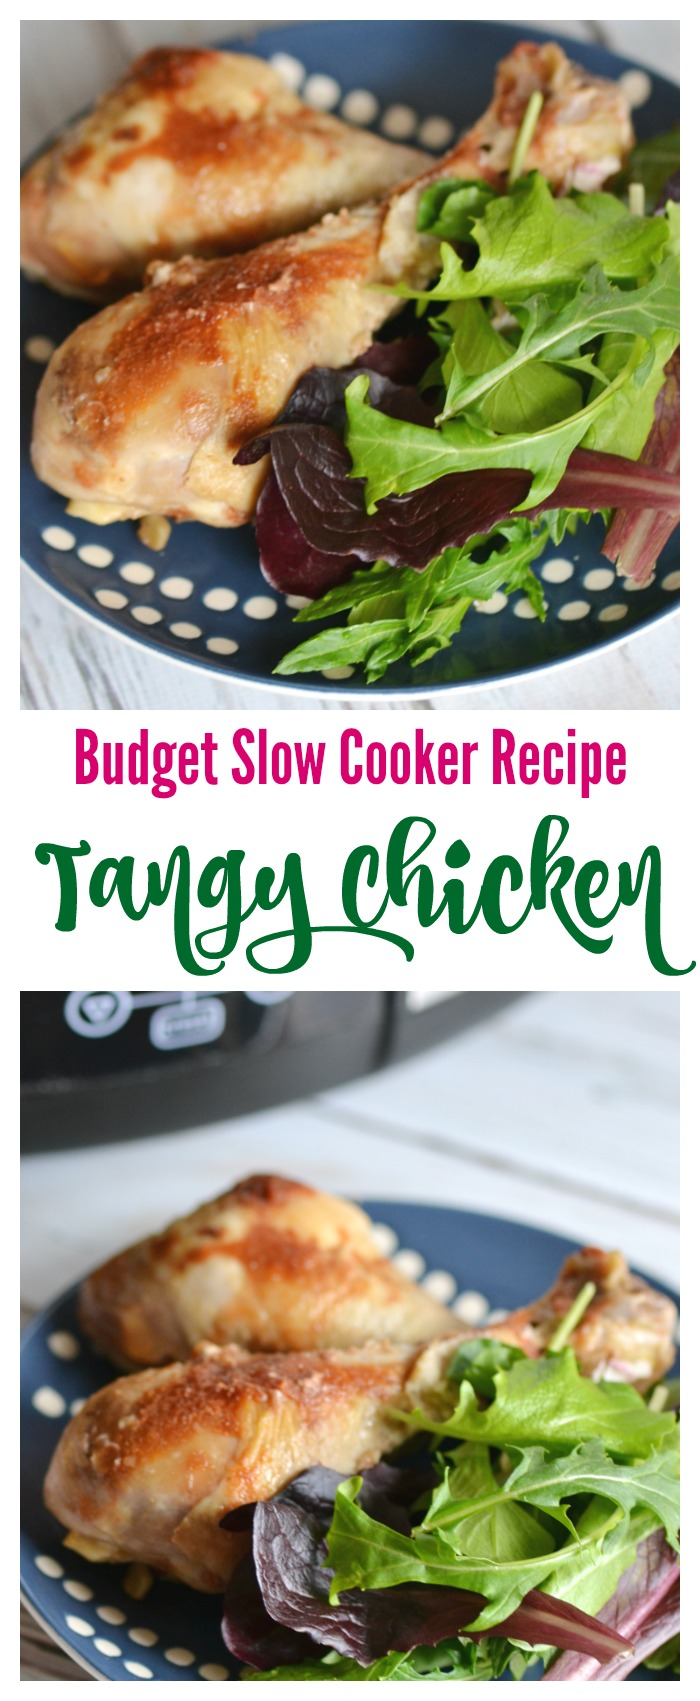 Budget Slow Cooker Recipe: Tangy Chicken. This easy cheap crock pot recipe is great for nights when you have little time to prep but want a great meal for your family.